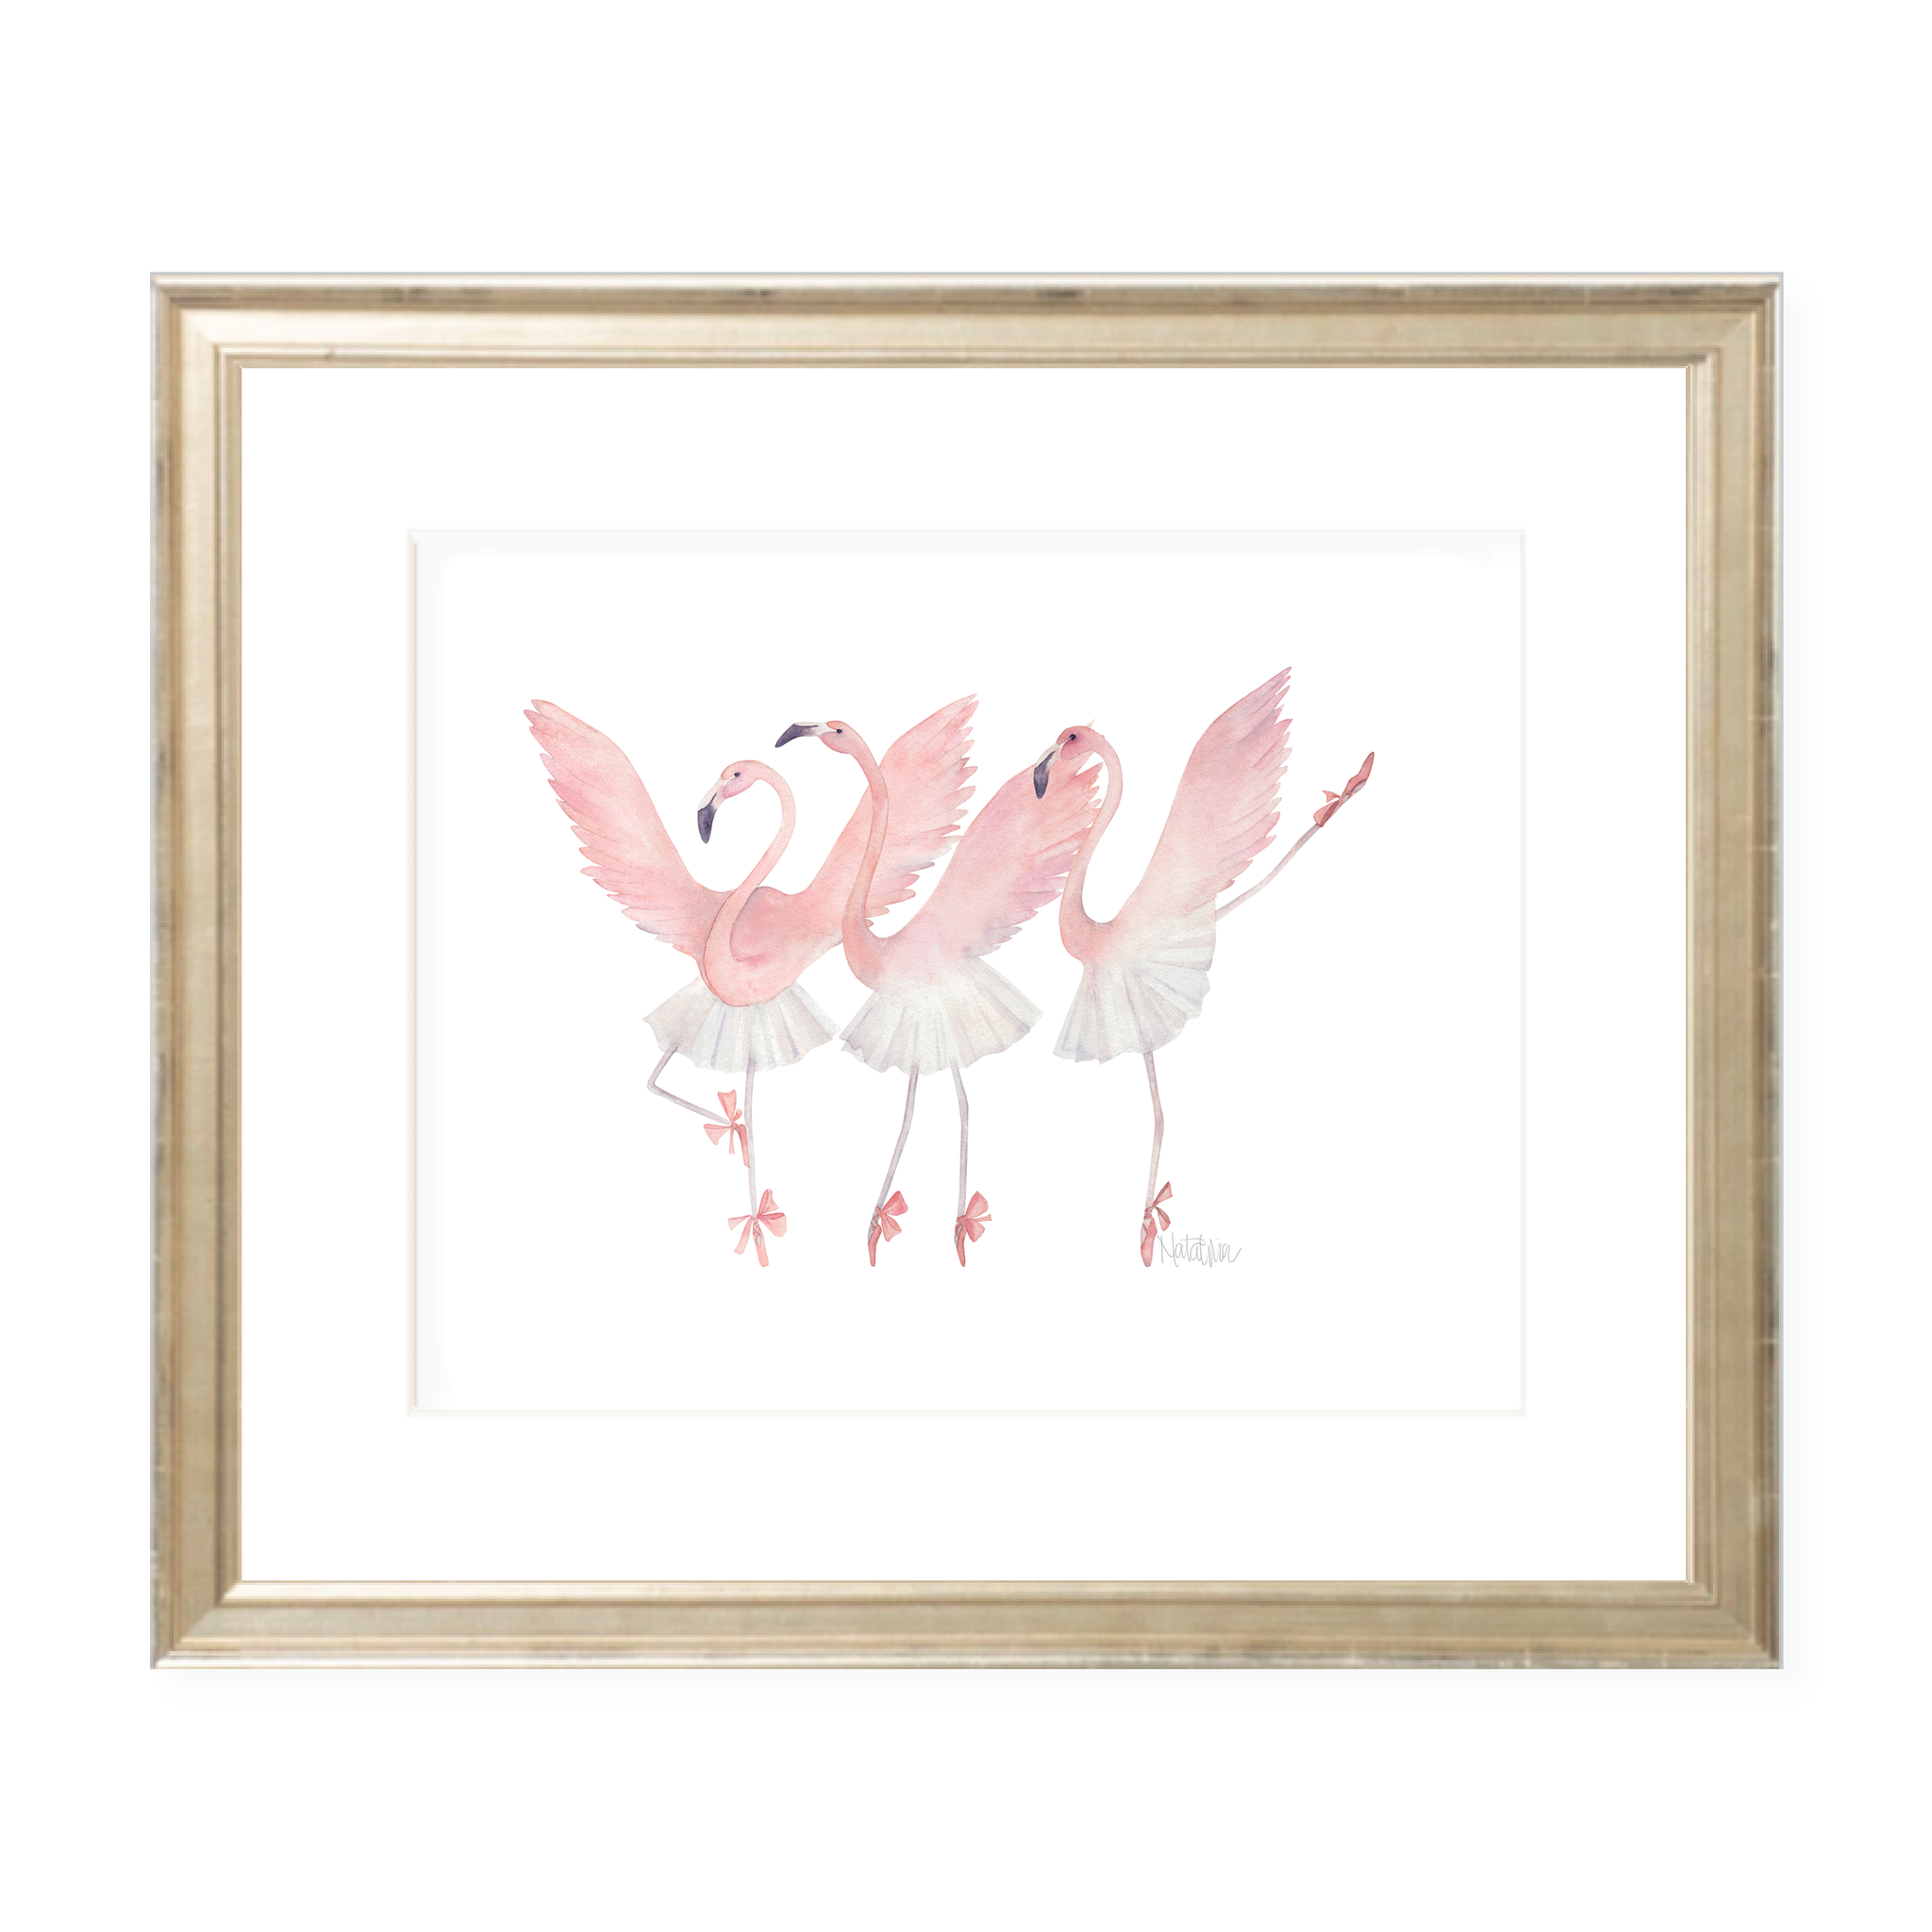 Dancing Flamingos Landscape Watercolor Print